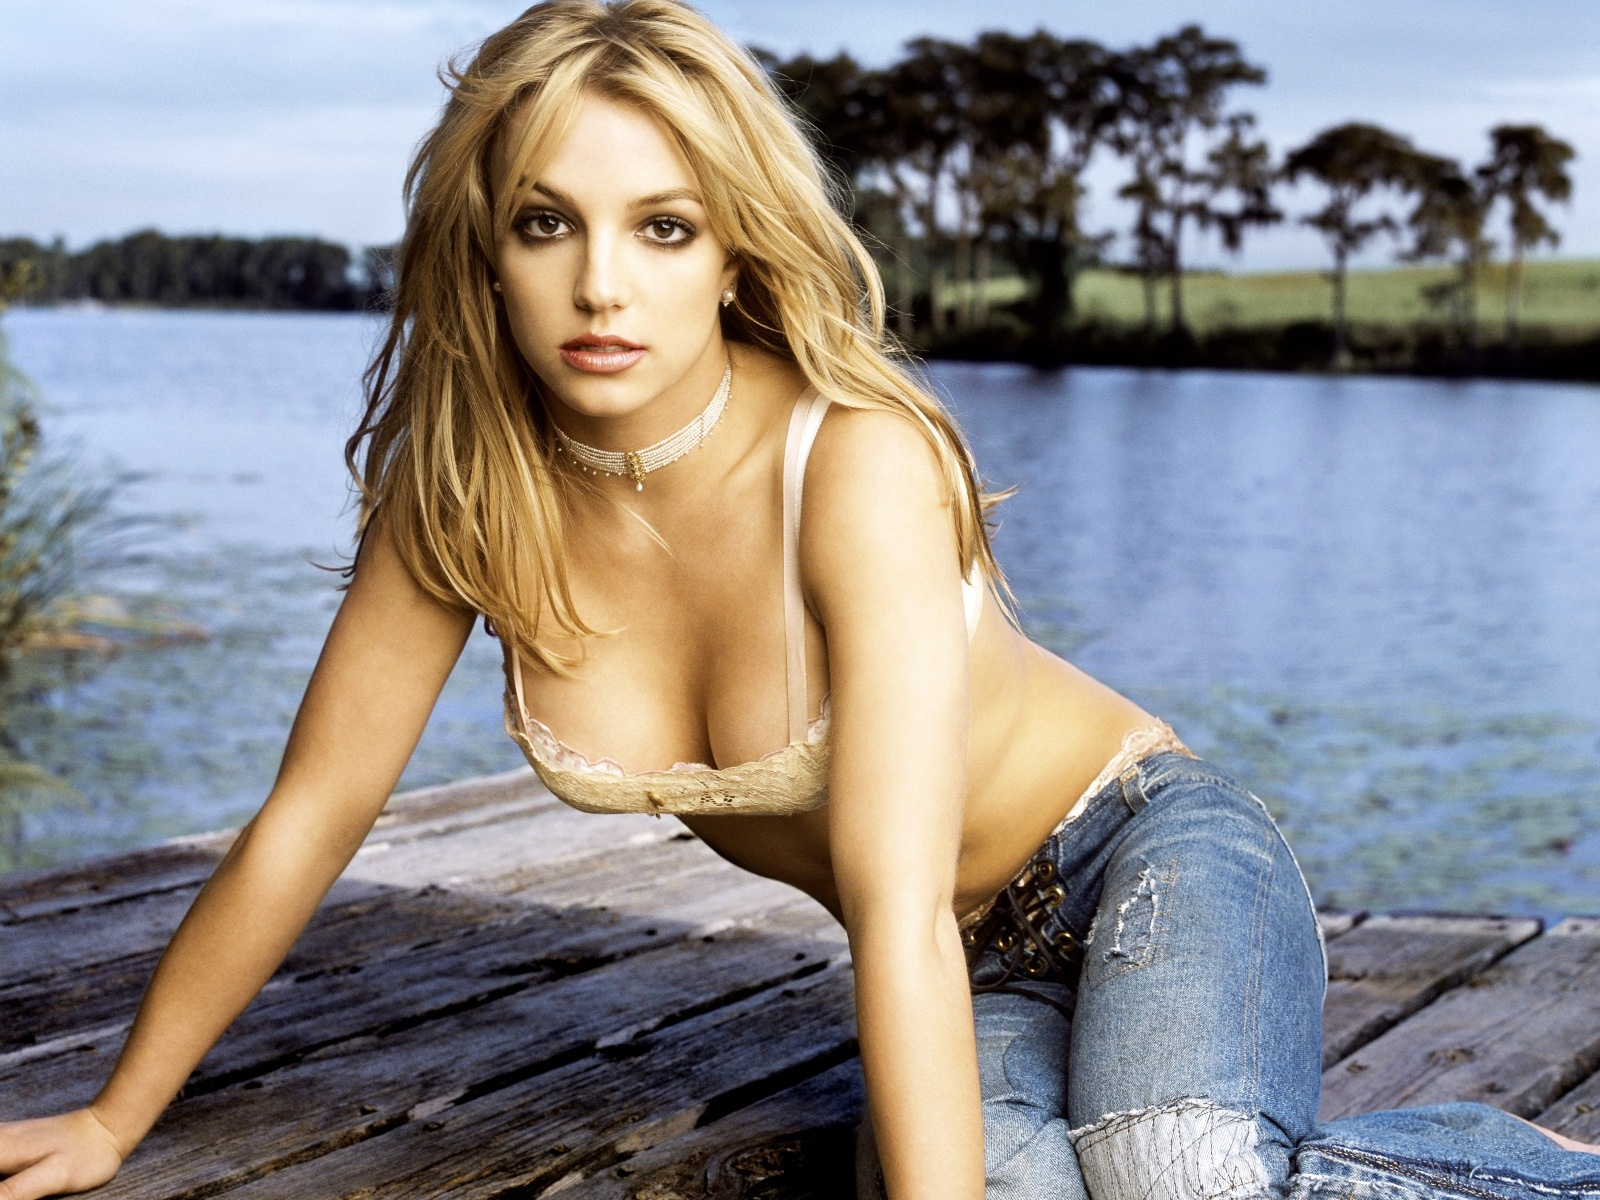 http://2.bp.blogspot.com/-htNa5O9Kz7A/TrkV0JqigkI/AAAAAAAACds/HNPthrR2Ezs/s1600/britney_spears_-knormal-wallpapers-wallpape.in.jpg